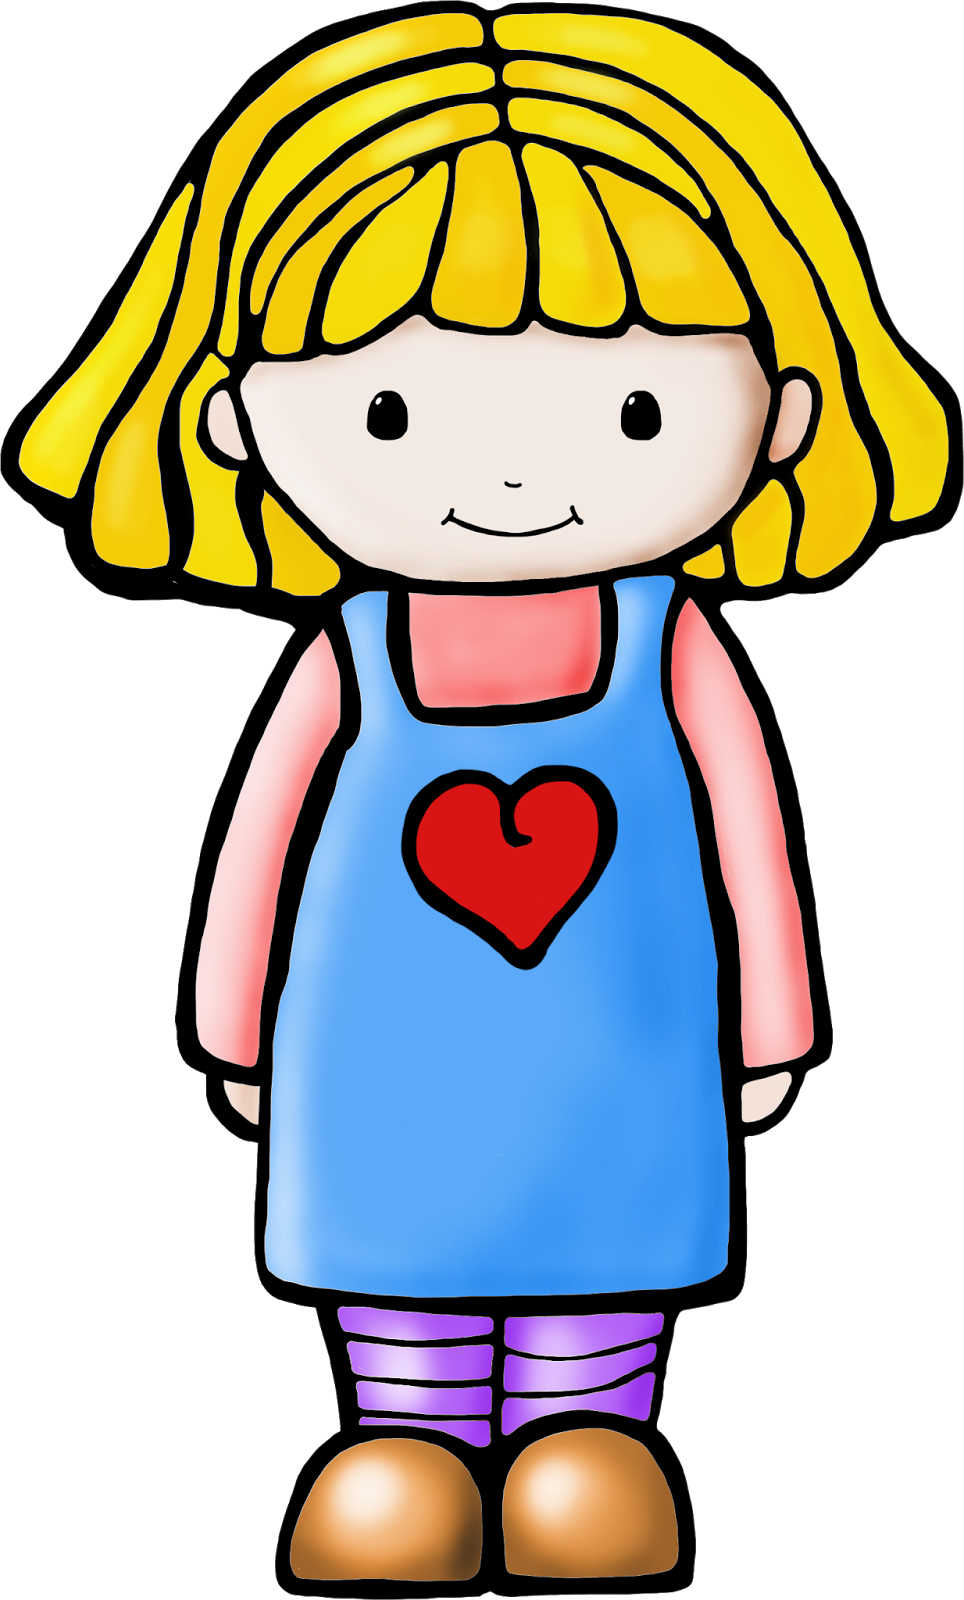 Clip art of a girl; Girl Clipart - Free Clipart Images ...